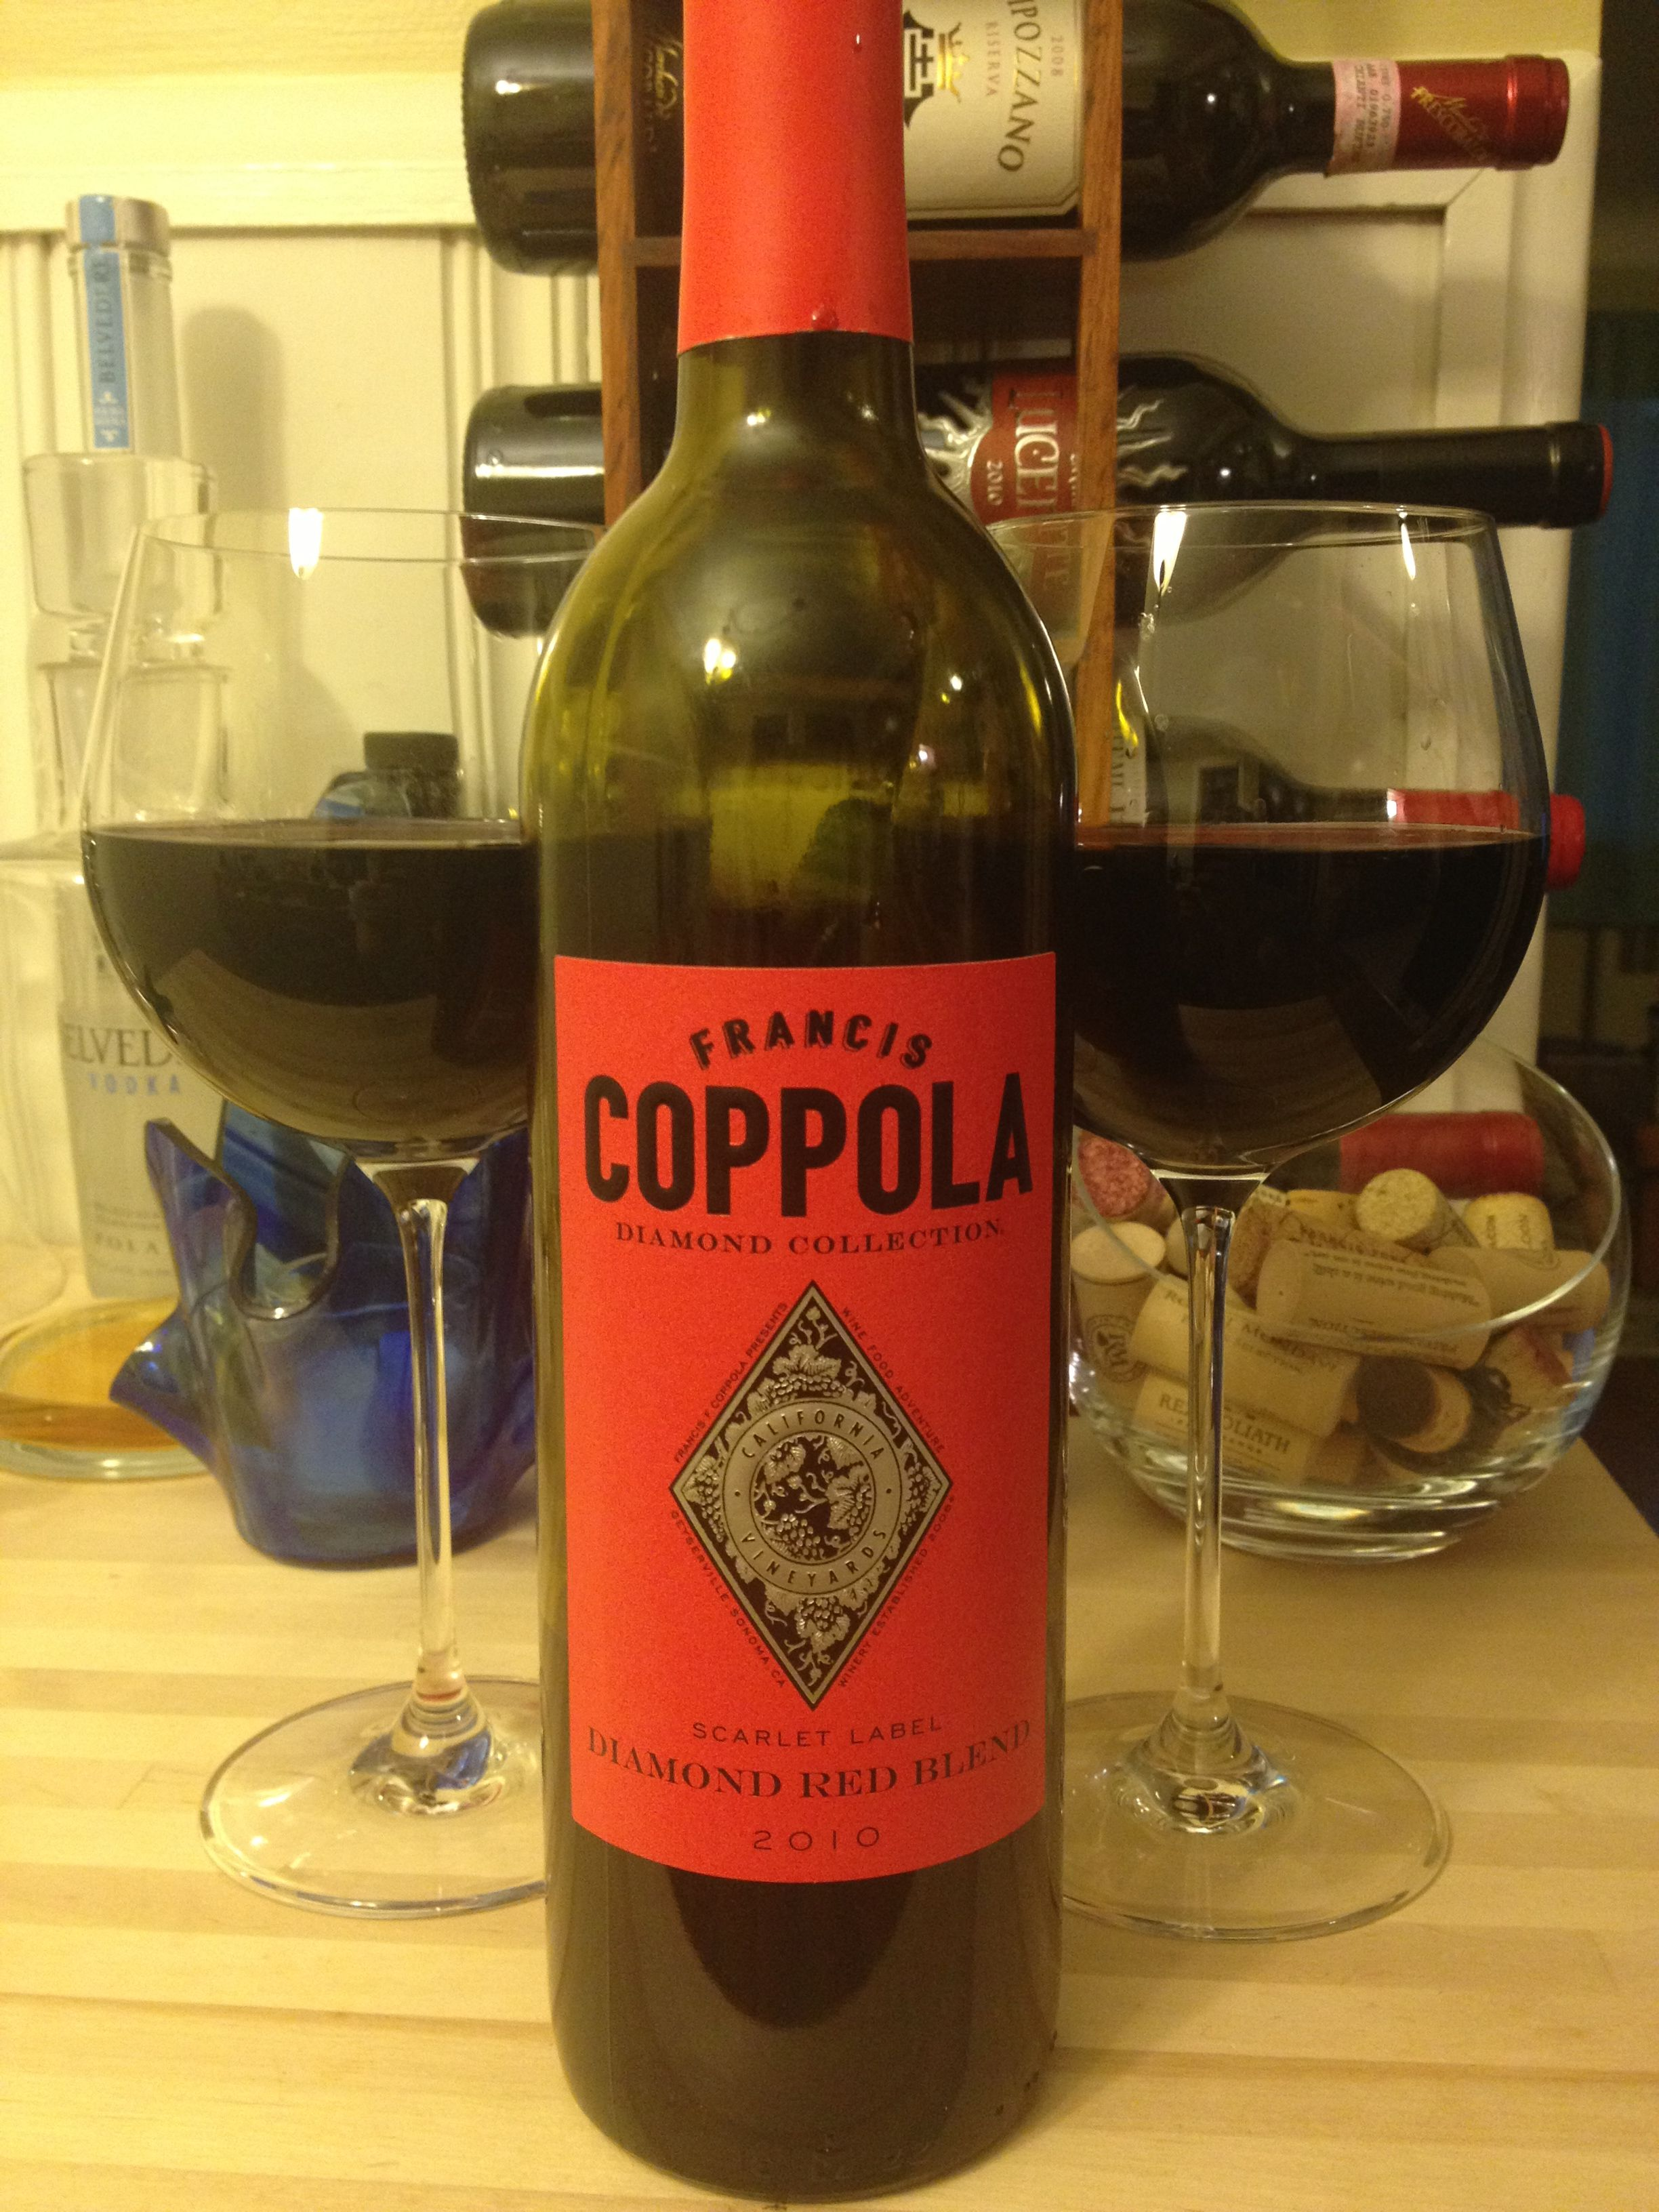 2010 Coppola Diamond Red Blend Wine Bottle Red 2010 Red